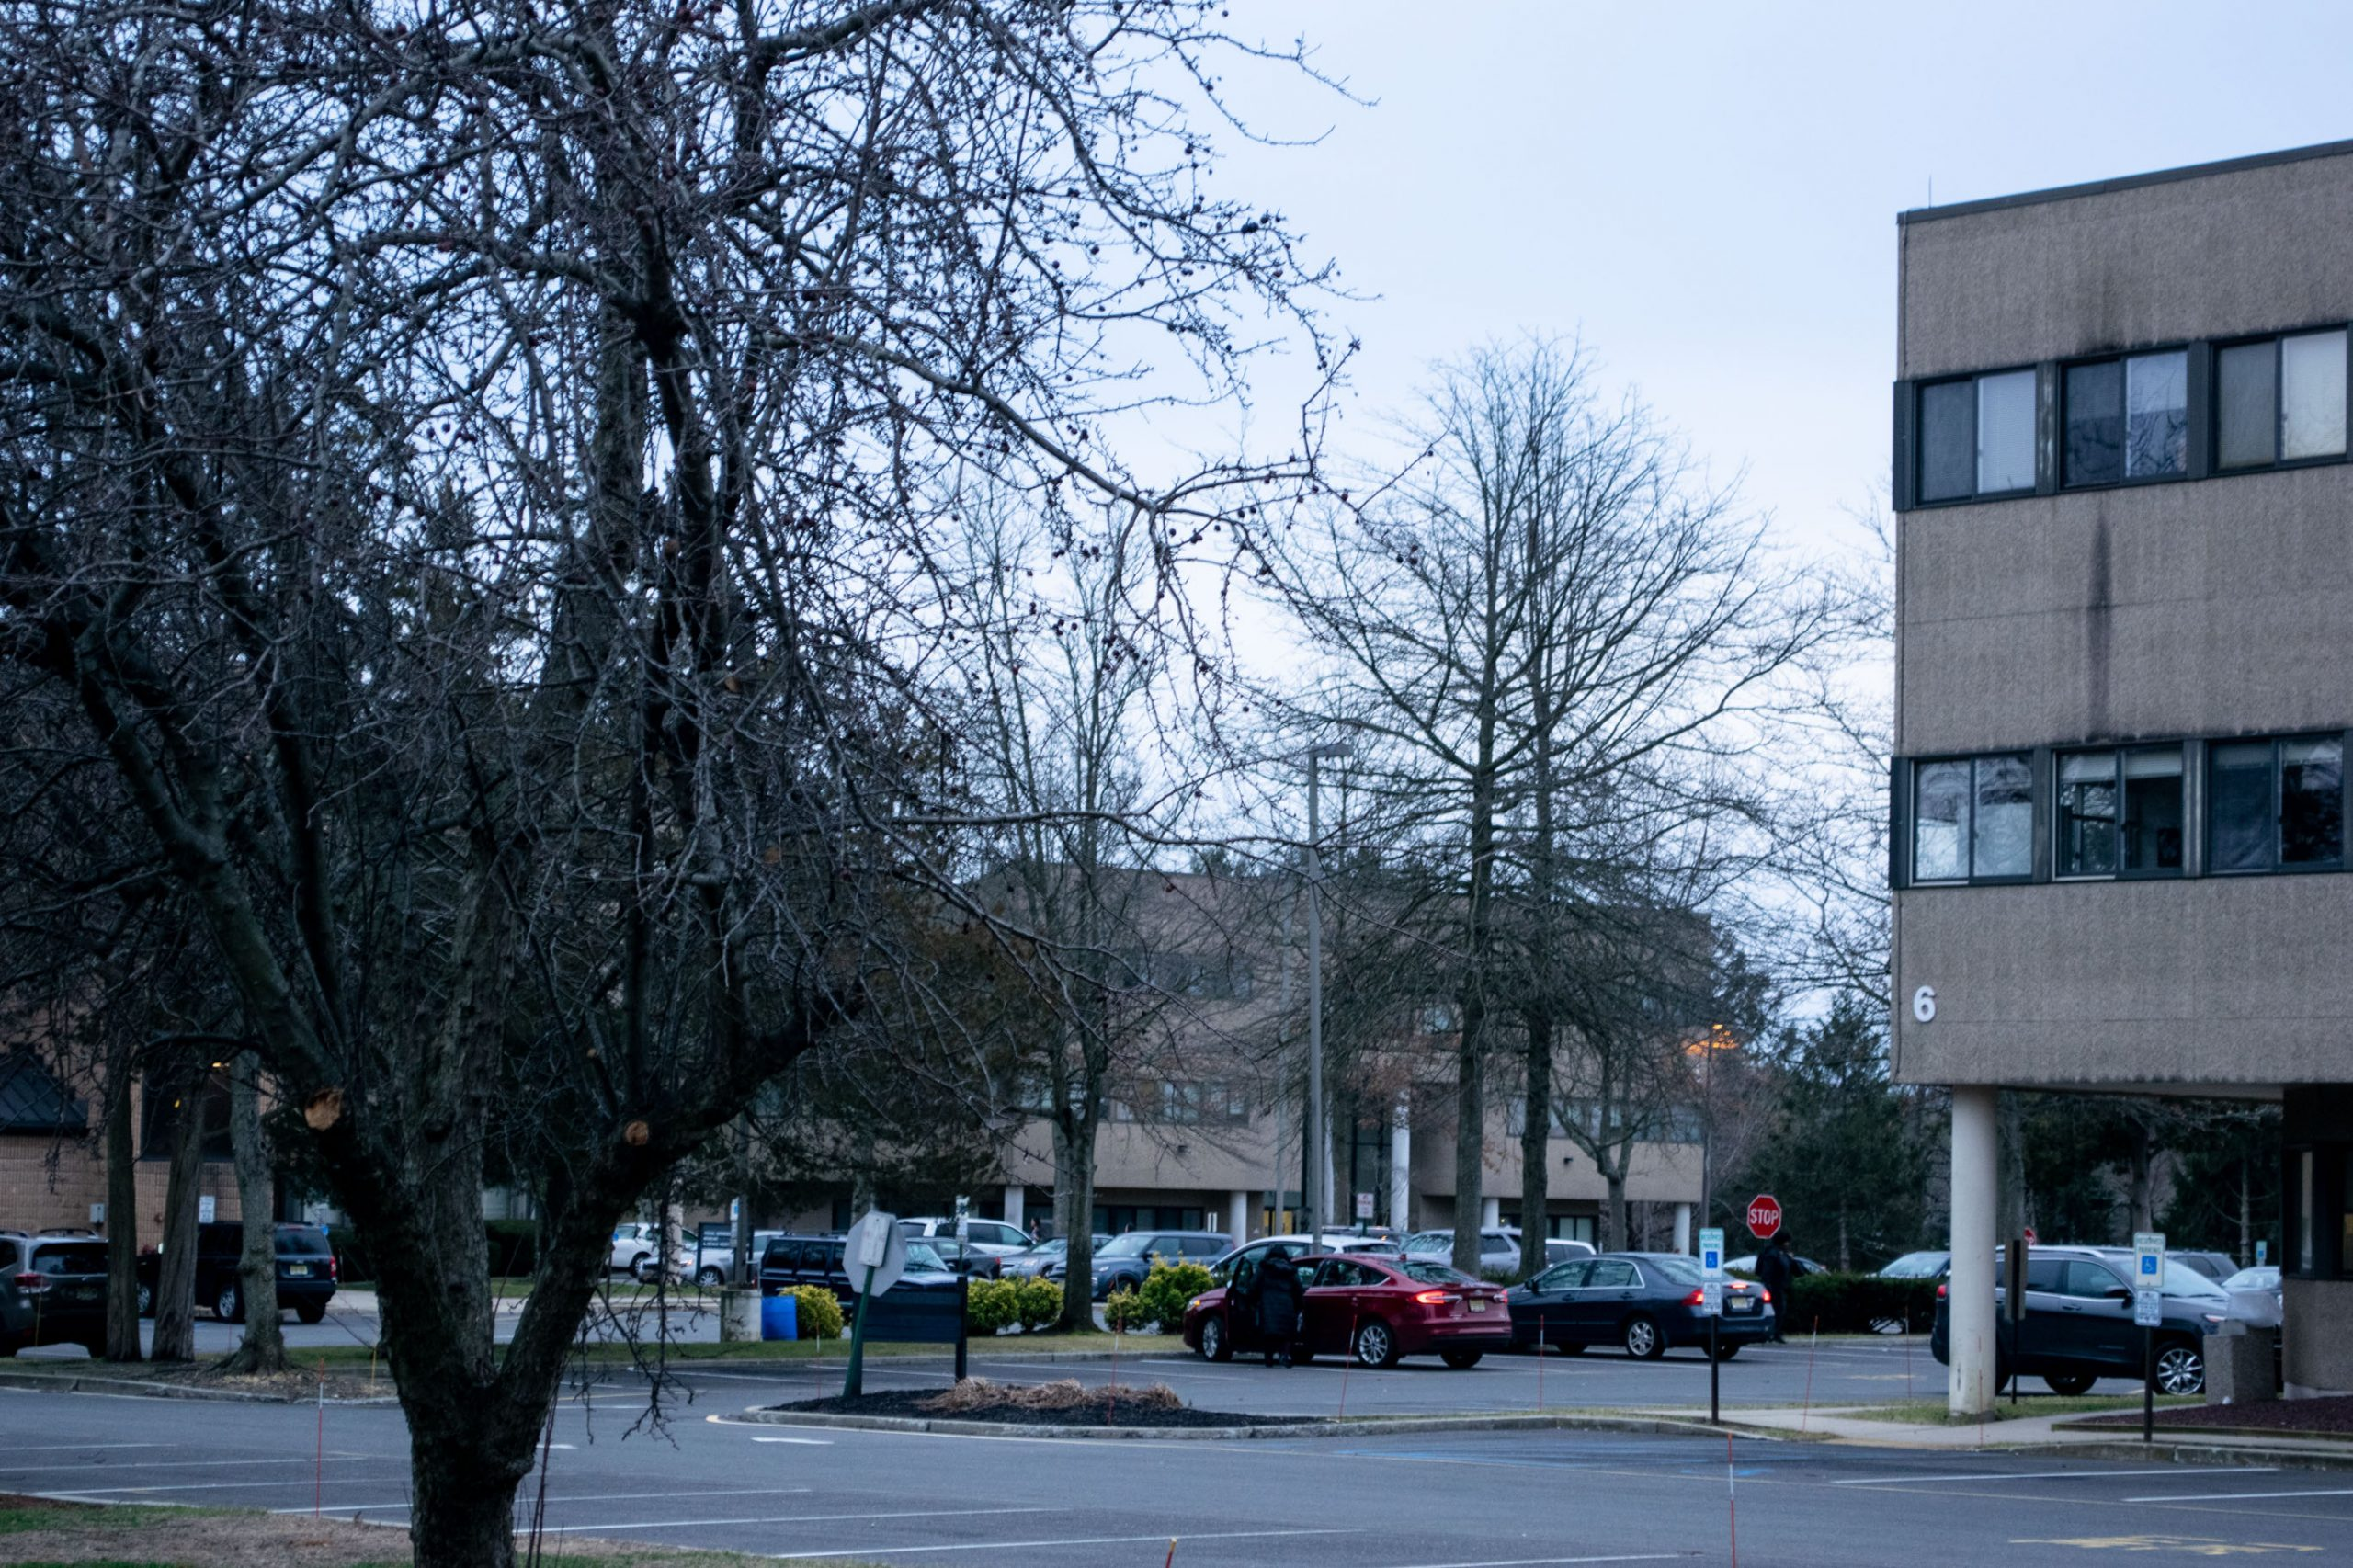 The Ocean County Social Services complex in Toms River. (Photo: Daniel Nee)